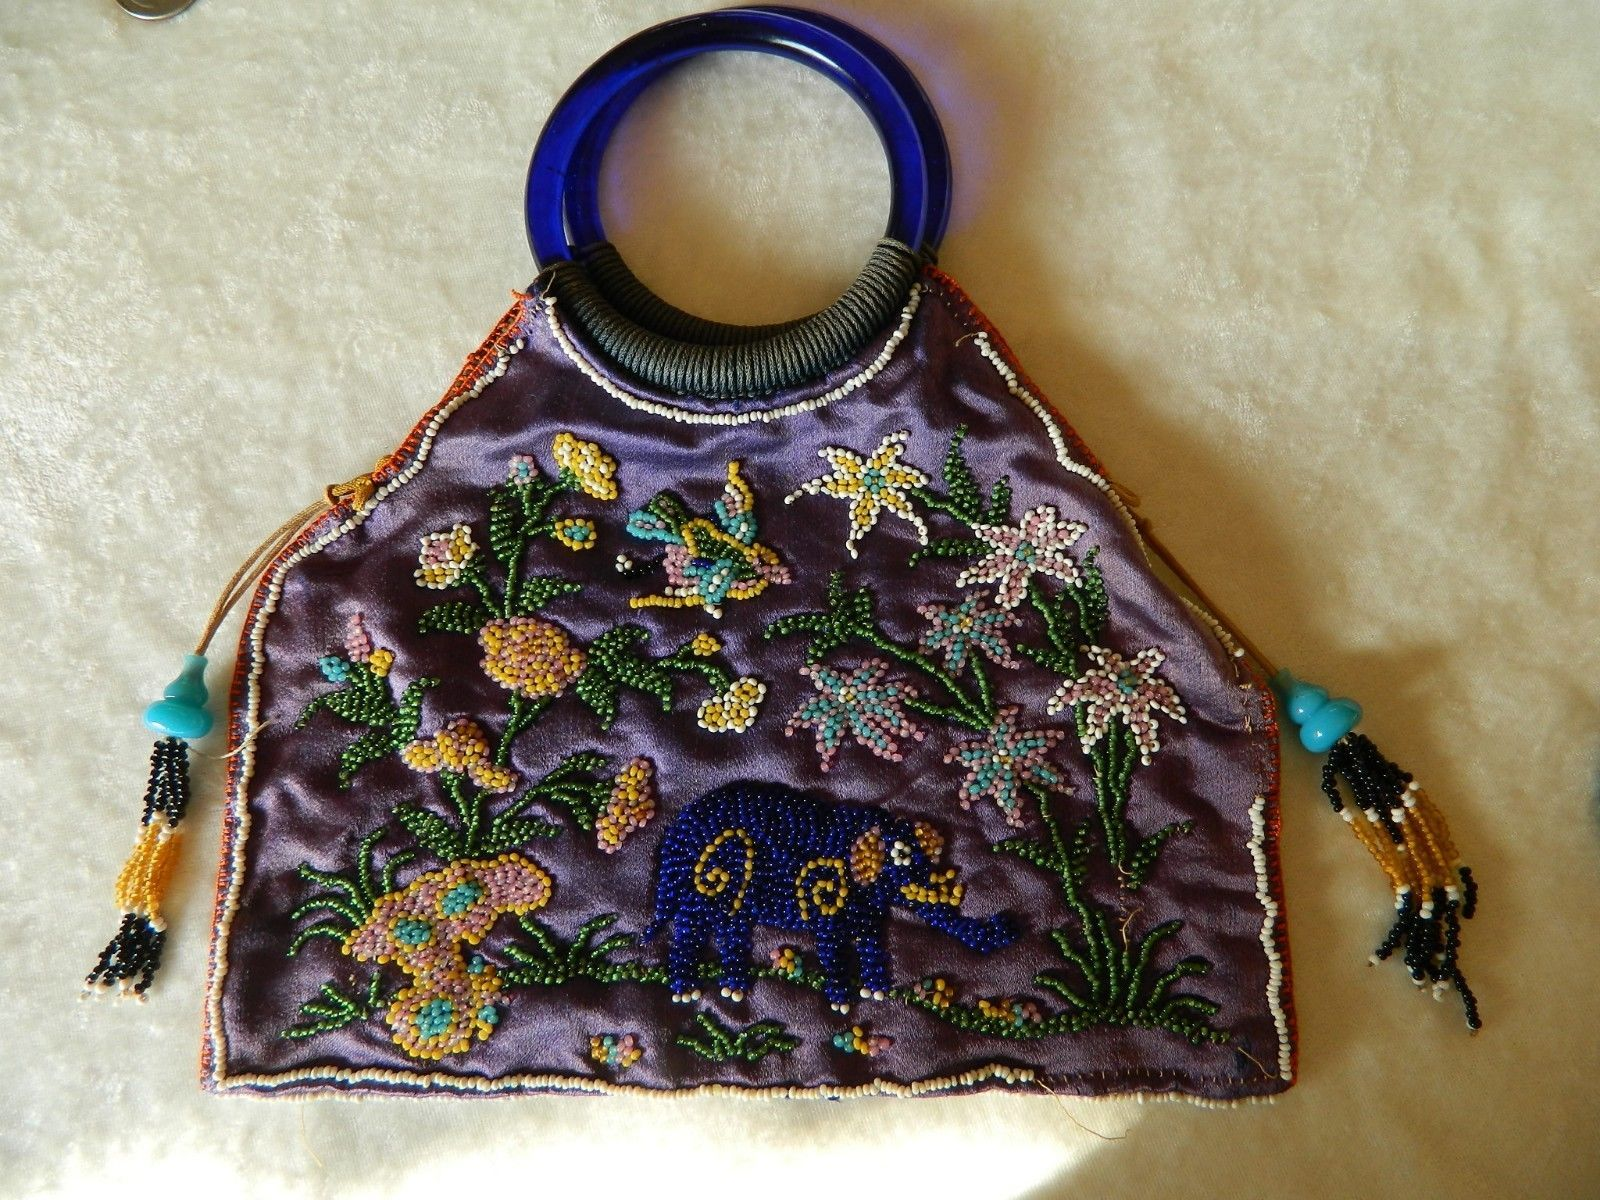 """Antique/Vintage (1901-1919) Asian silk beaded purse w/cobalt blue glass bracelet handles, 2 tassels & a beaded design that includes an elephant, bird & flowers. 10"""" long including the handles x 9"""" wide laying flat. The glass bracelet handles measure 3 1/2"""" diameter & are in good condition; most of the main beaded pattern is good with just a few beads missing. The silk has faded & looks purple to blue, one of the tassel strands is missing & a lot of the white edge beads are missing."""